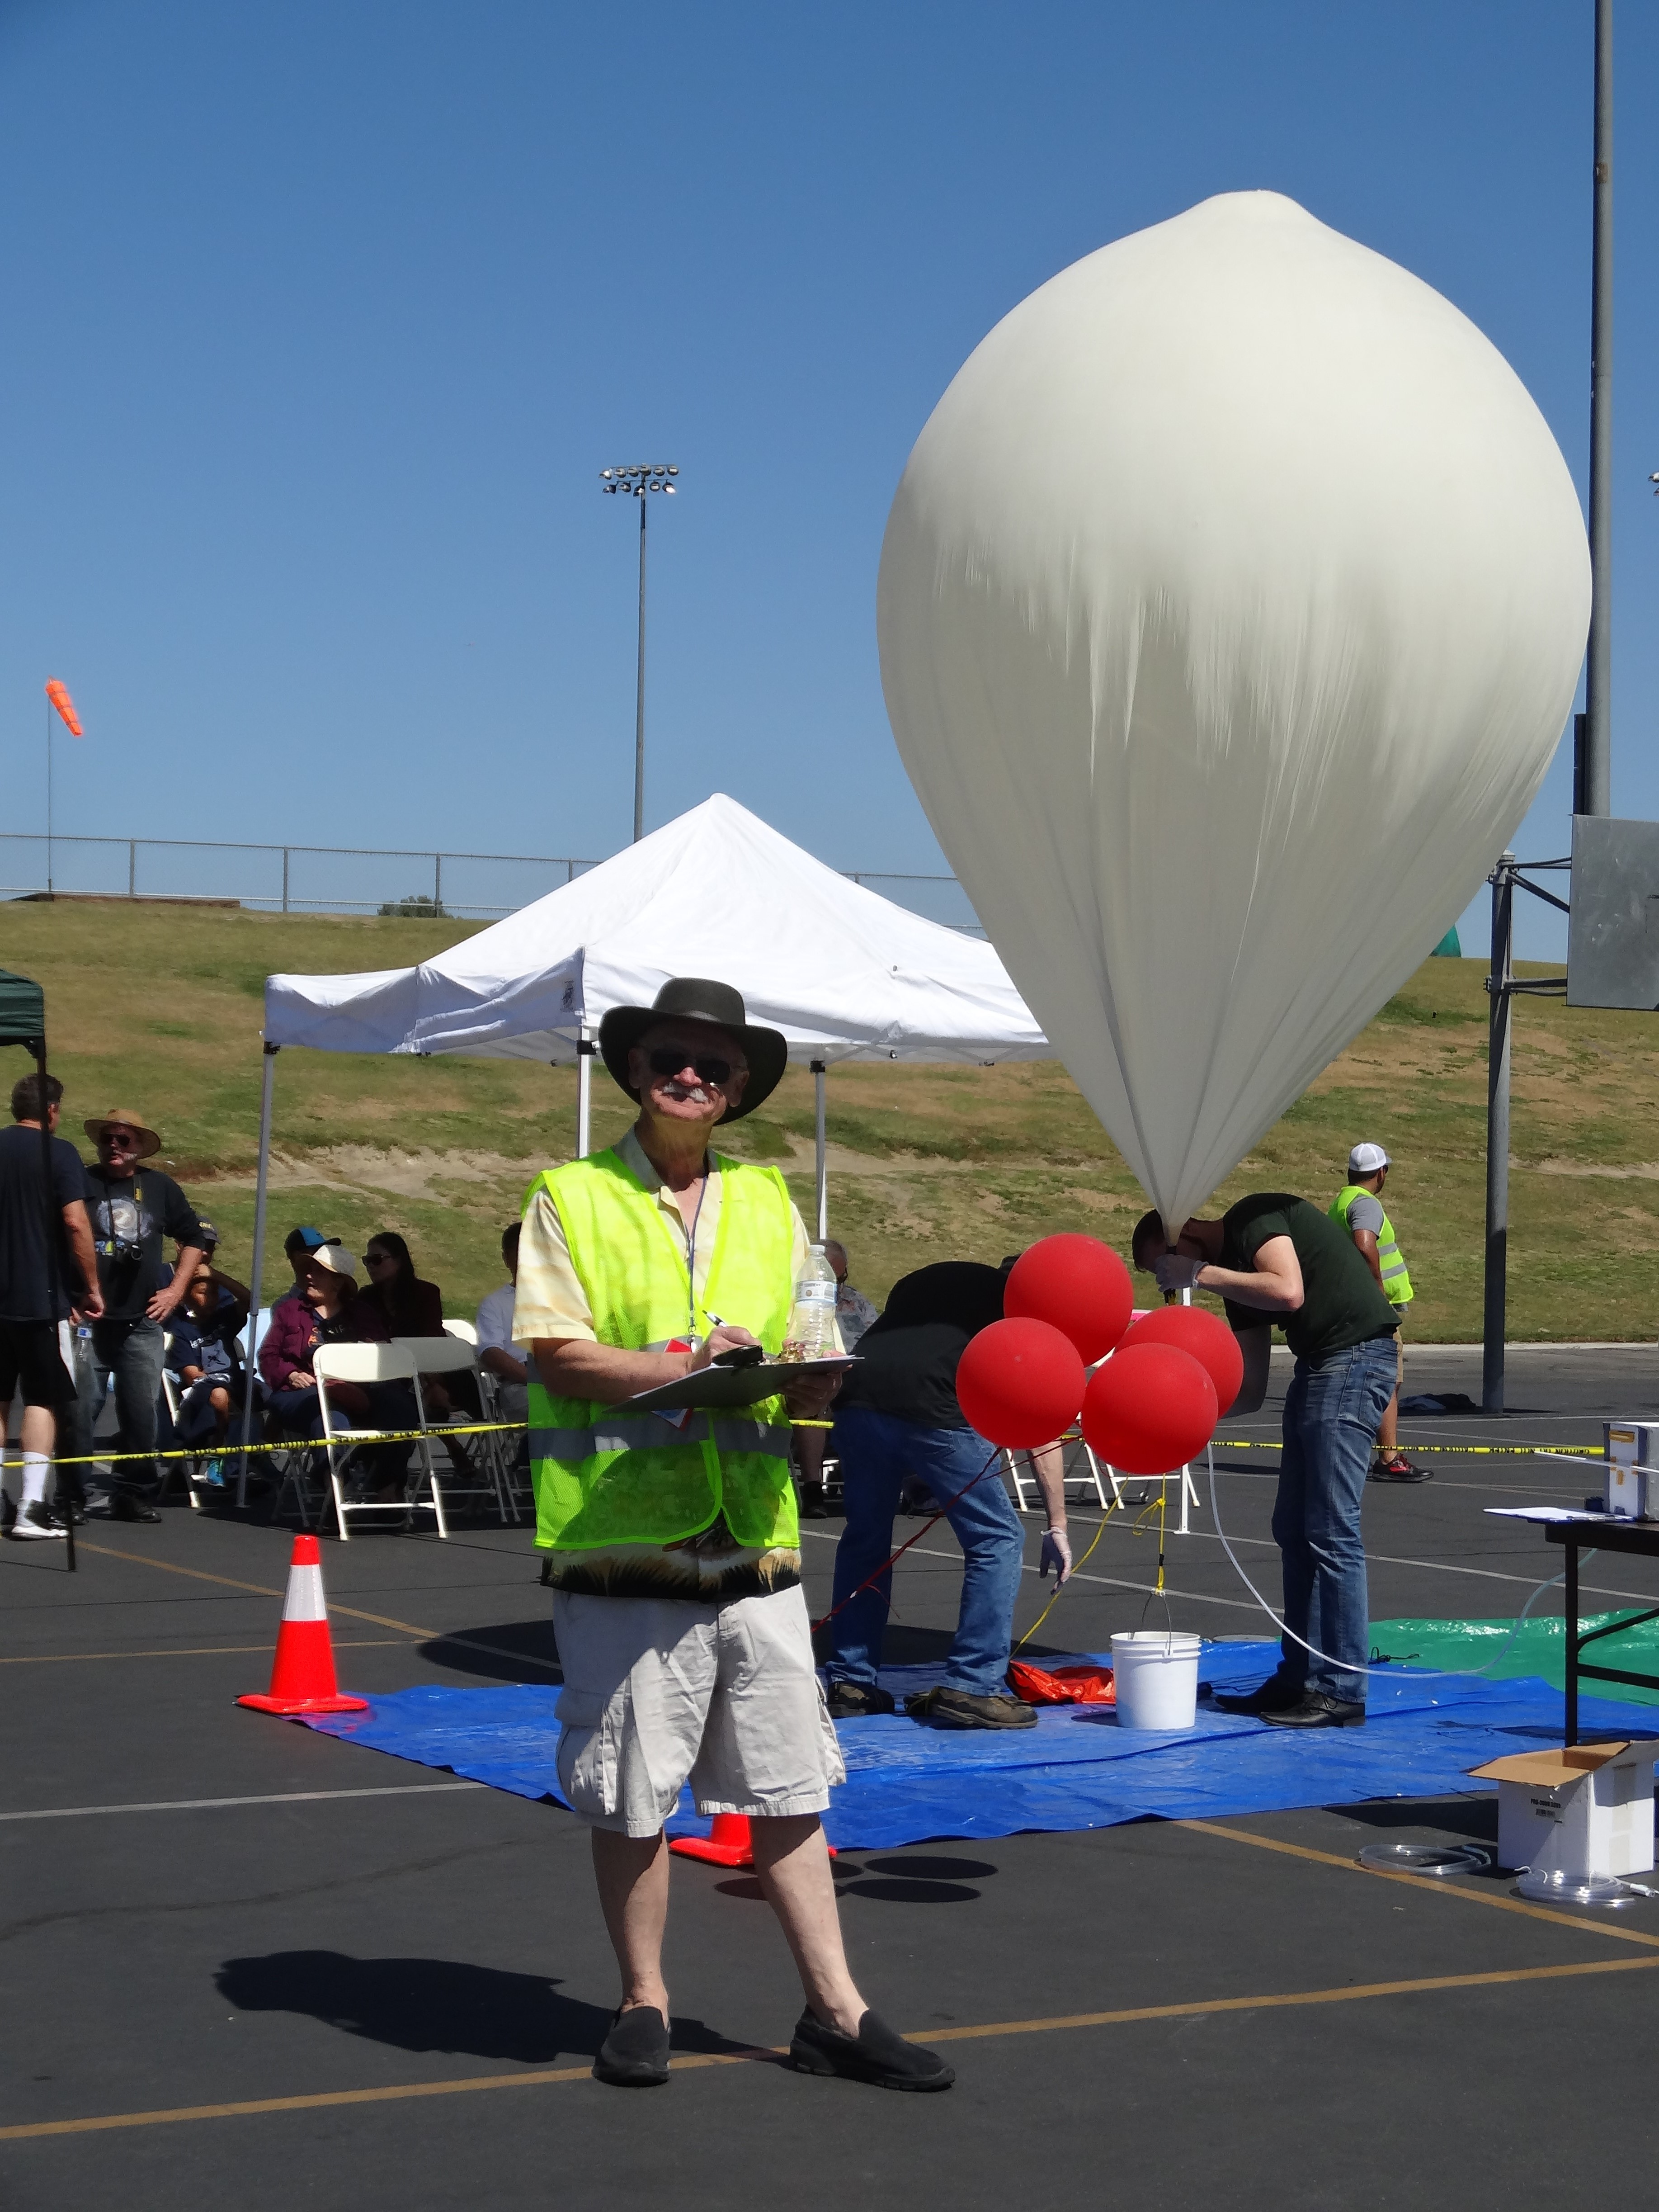 Science Heads' High Altitude Balloon STEM Program